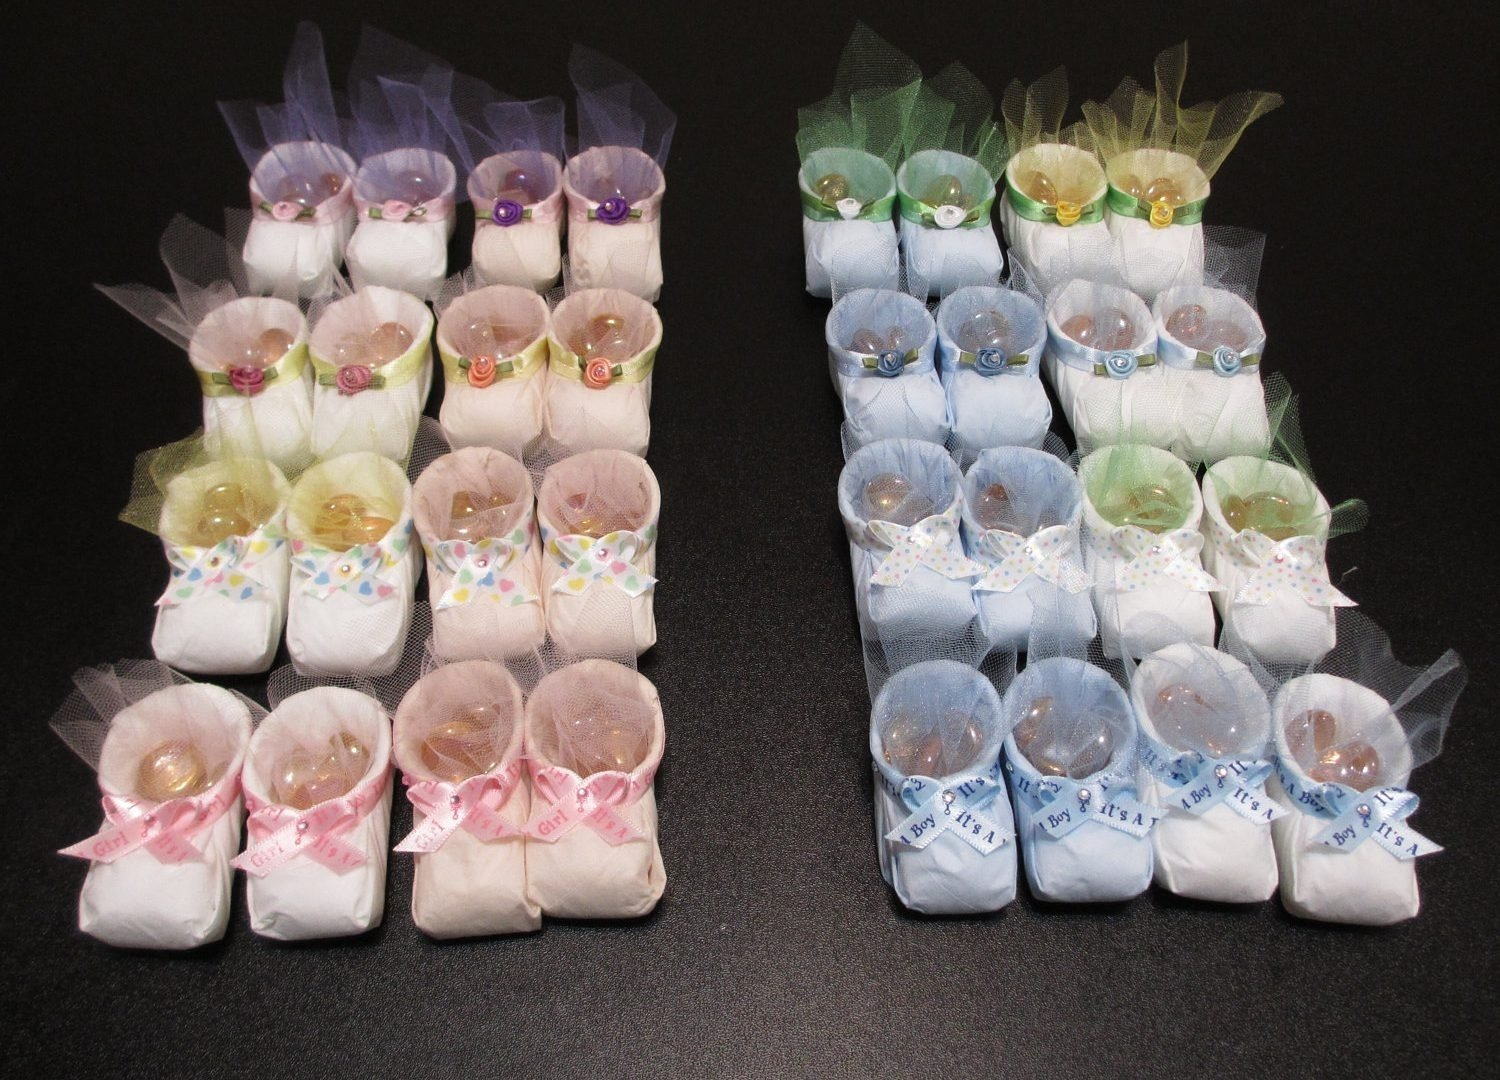 10 Lovable Homemade Baby Shower Party Favors Ideas homemade baby shower partyors ideas easy making stupendous party 1 2021